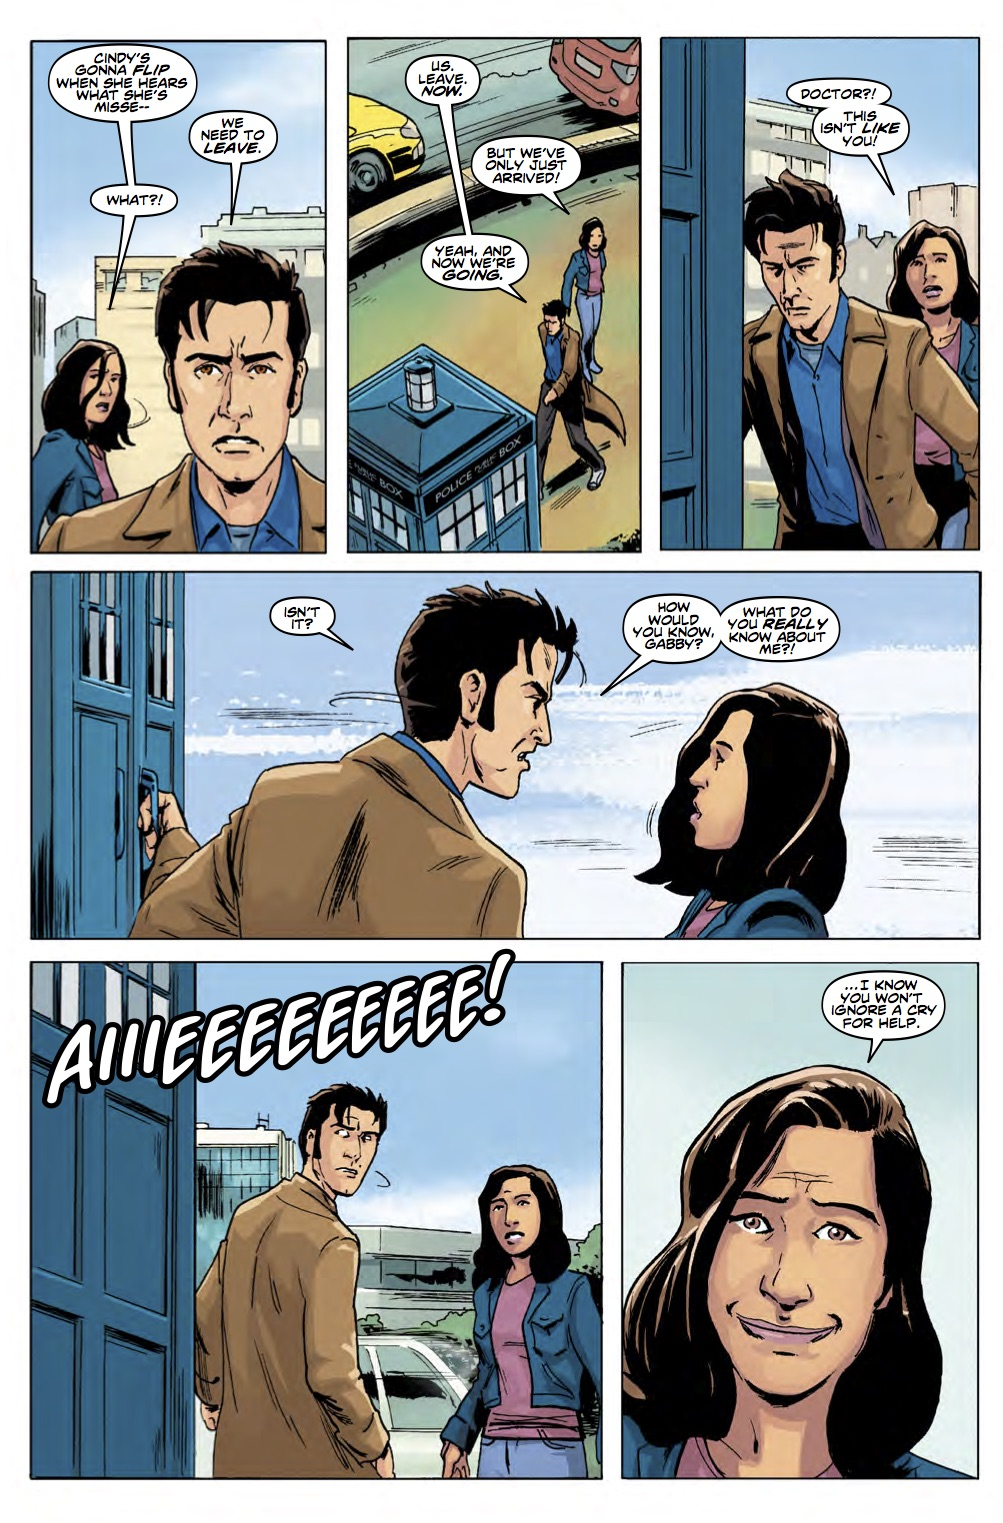 TENTH_DOCTOR 3.5 Preview 4 (Credit: Titan)